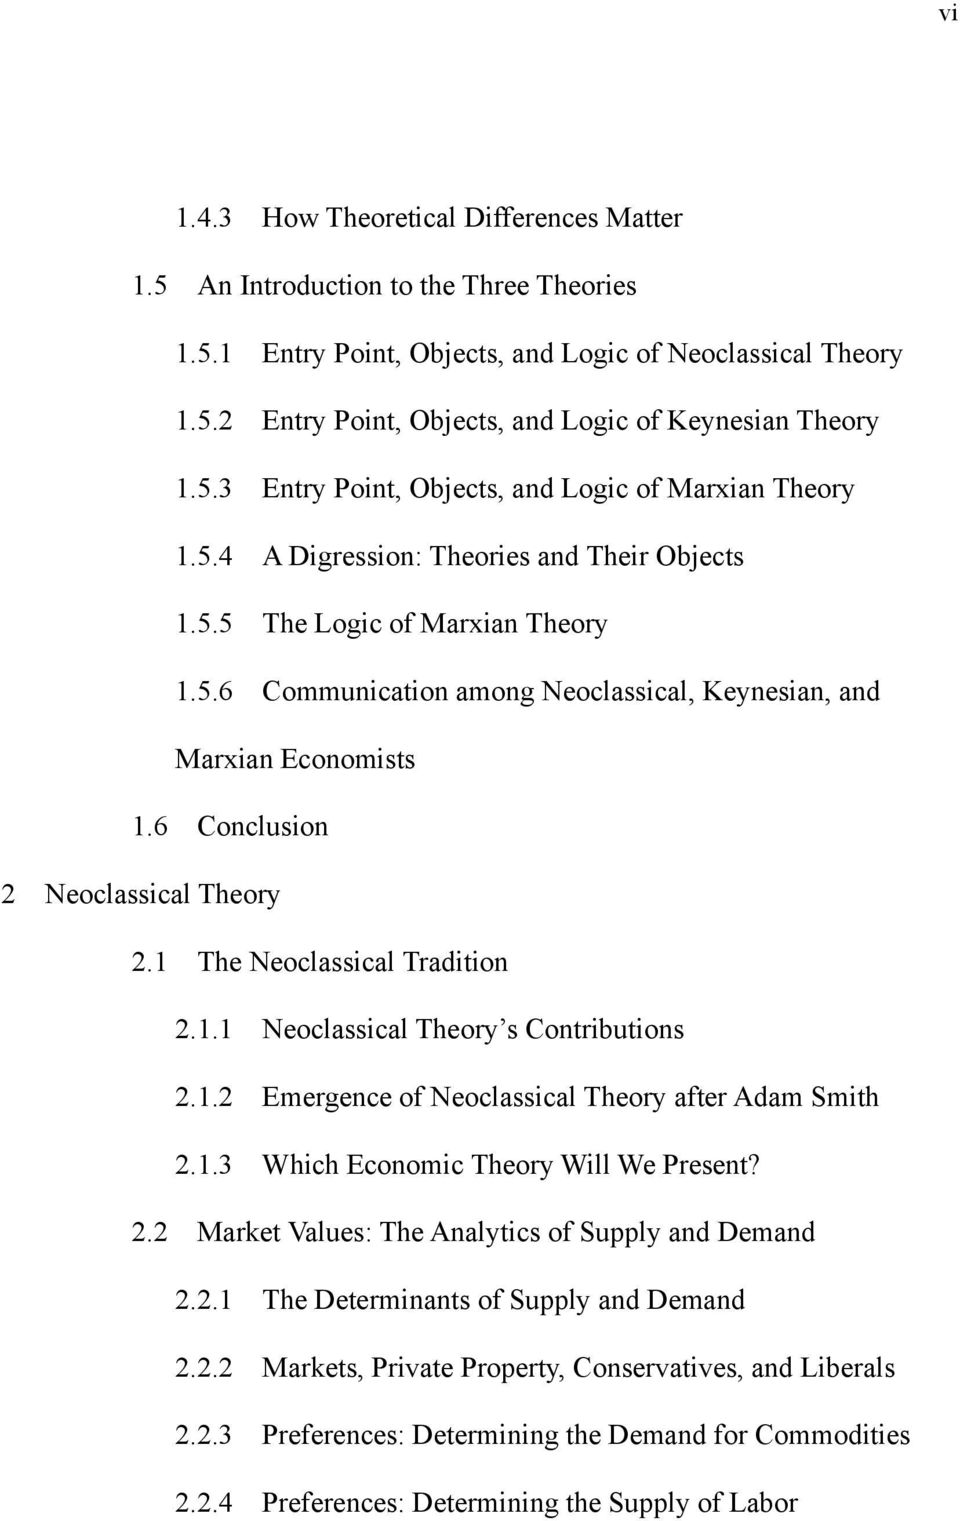 6 Conclusion 2 Neoclassical Theory 2.1 The Neoclassical Tradition 2.1.1 Neoclassical Theory s Contributions 2.1.2 Emergence of Neoclassical Theory after Adam Smith 2.1.3 Which Economic Theory Will We Present?